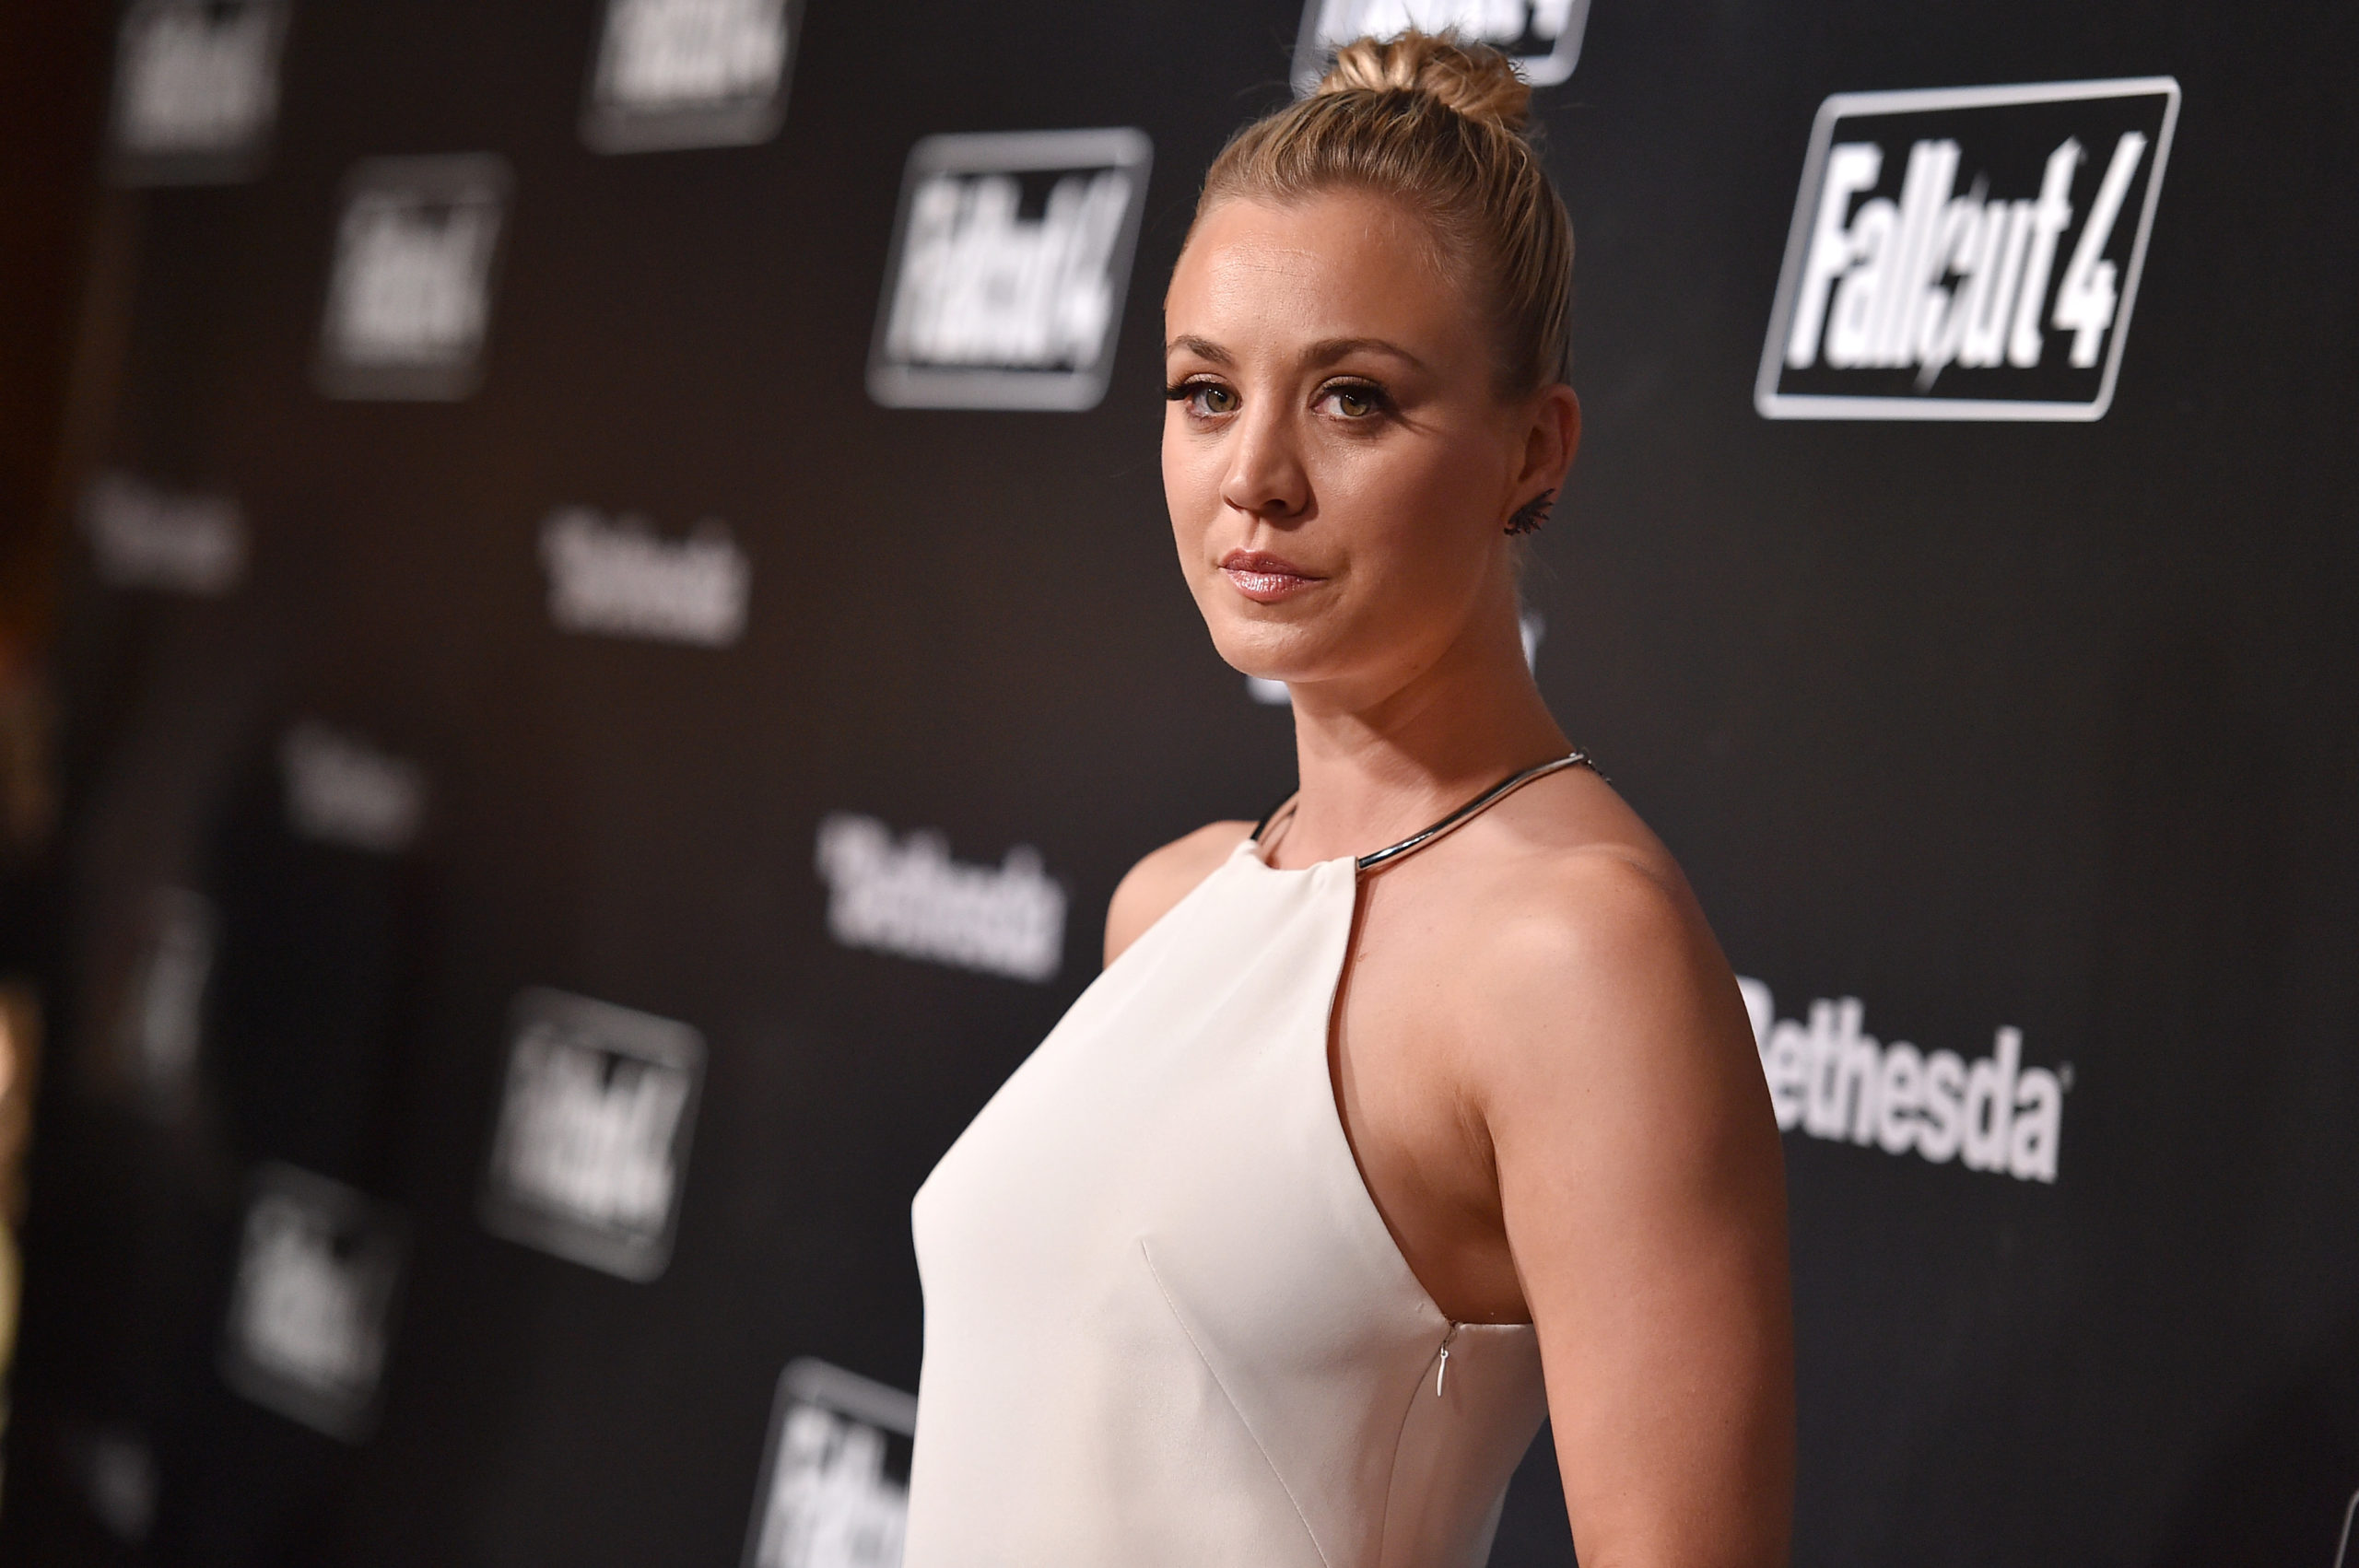 The Internet is furious with Kaley Cuoco over this Instagram snap - Smooth